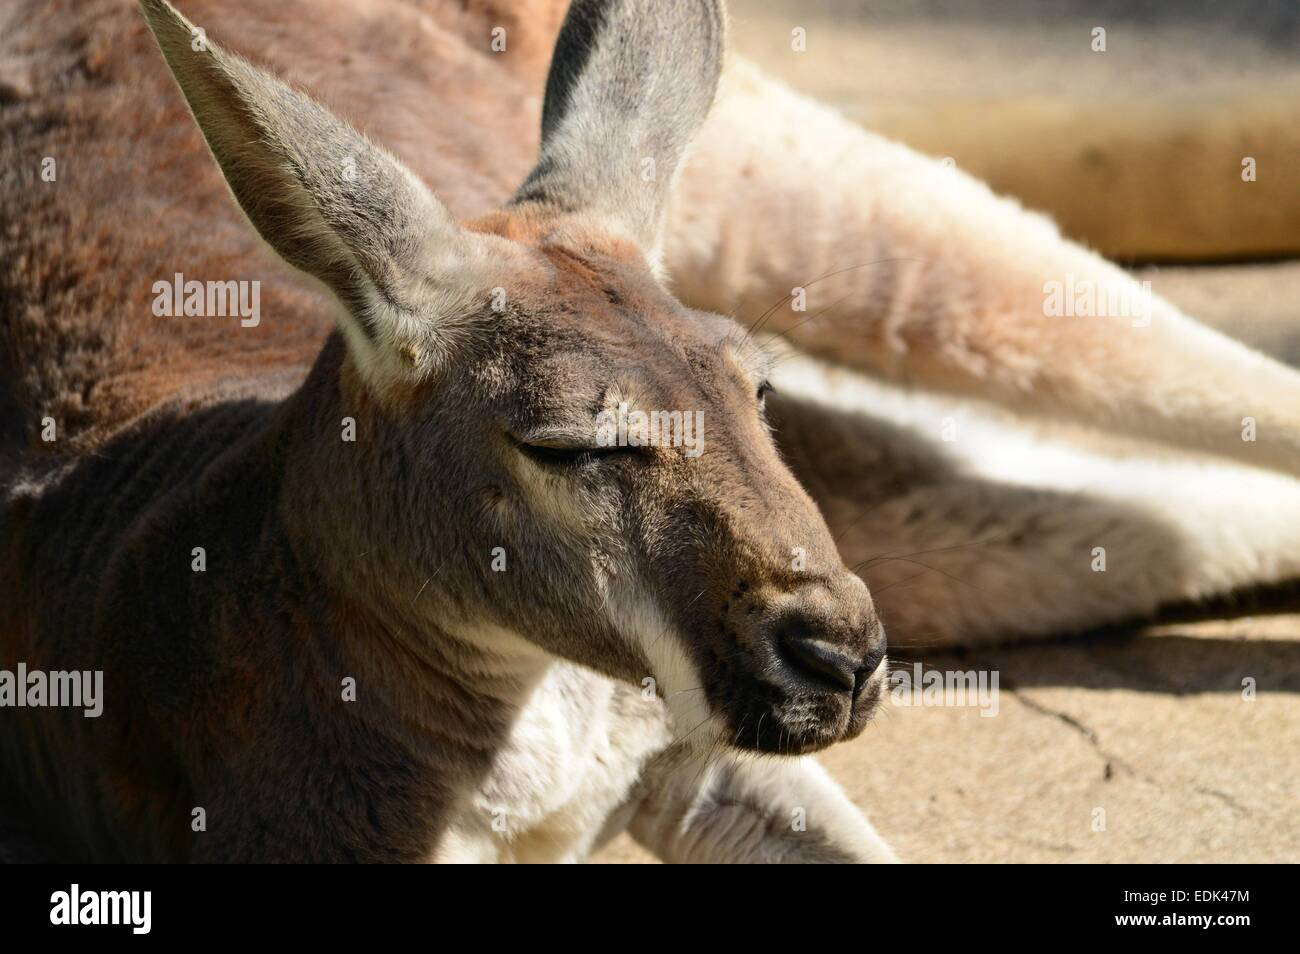 Kangaroo lounging in the sun being lazy and enjoying the day.  animal lying down in the sunshine - Stock Image